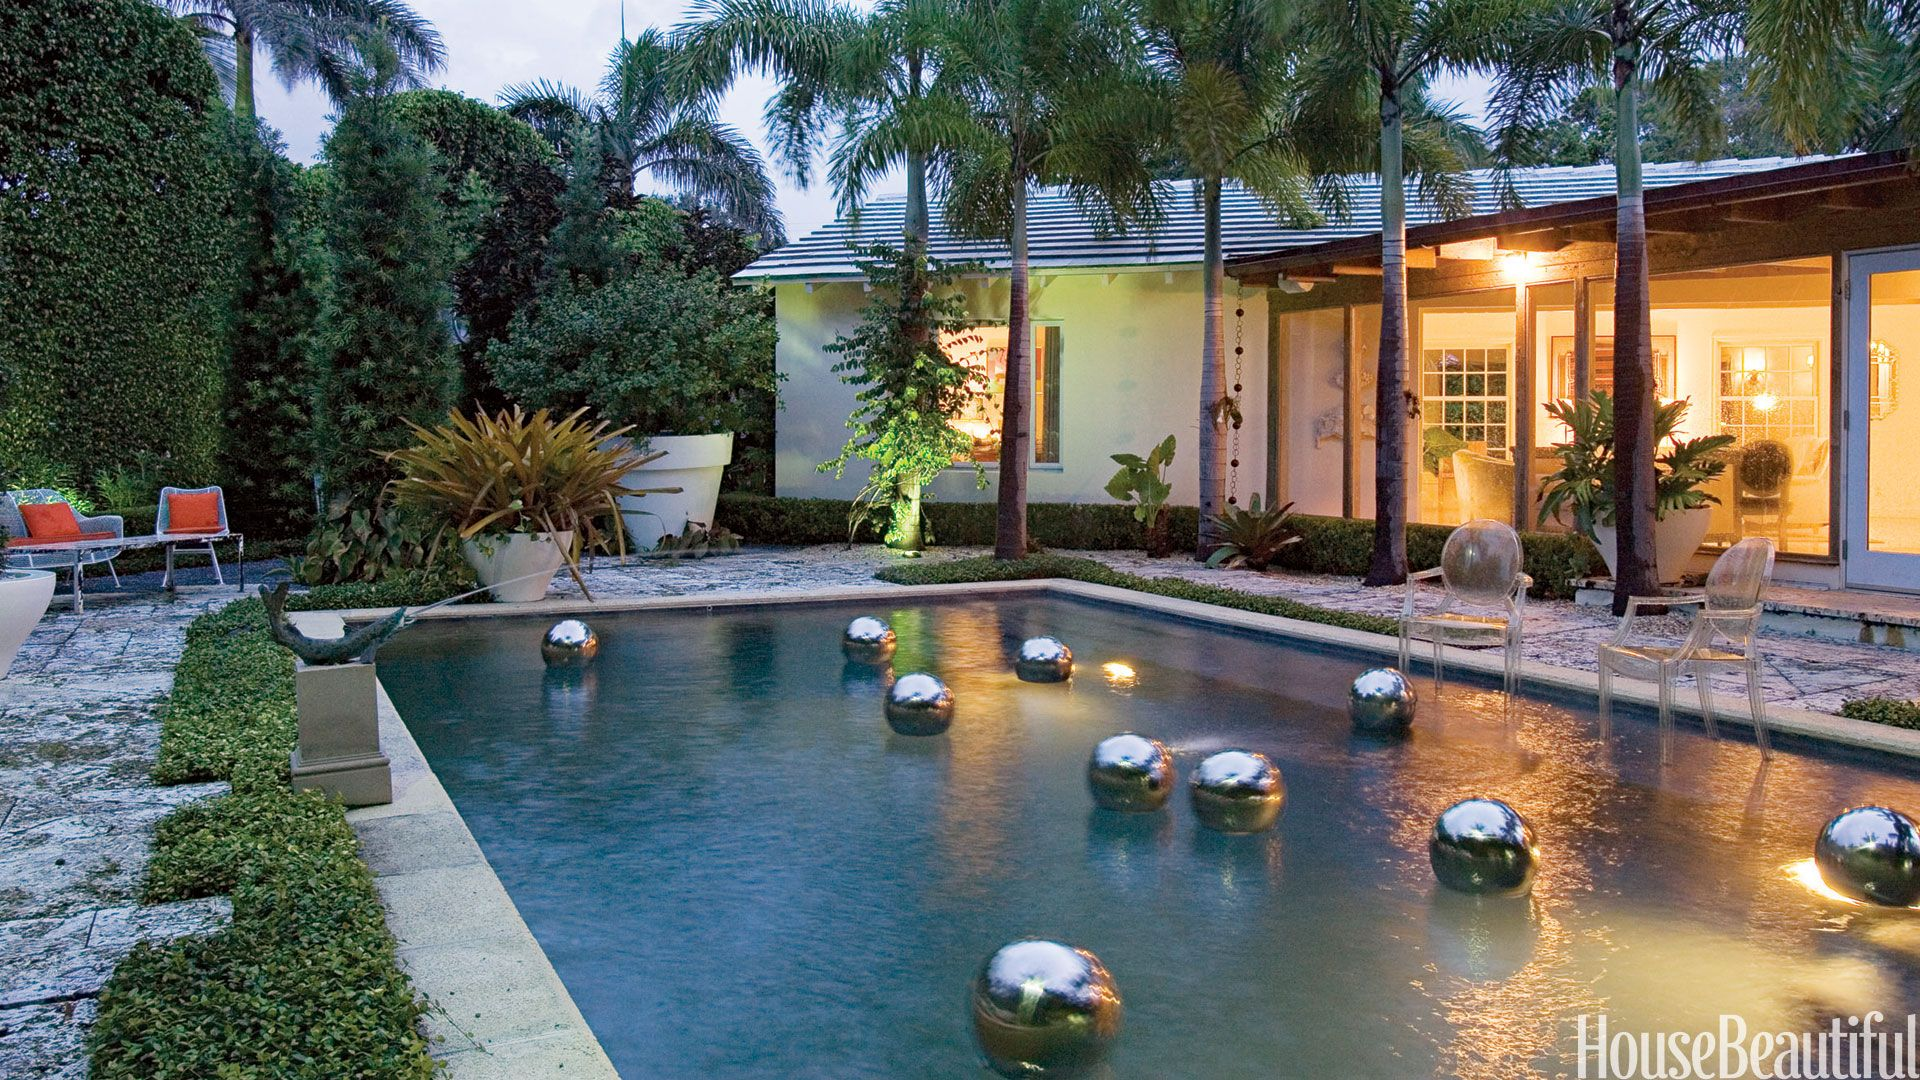 40 swimming pools we u0027d love to take a dip in right now ghost